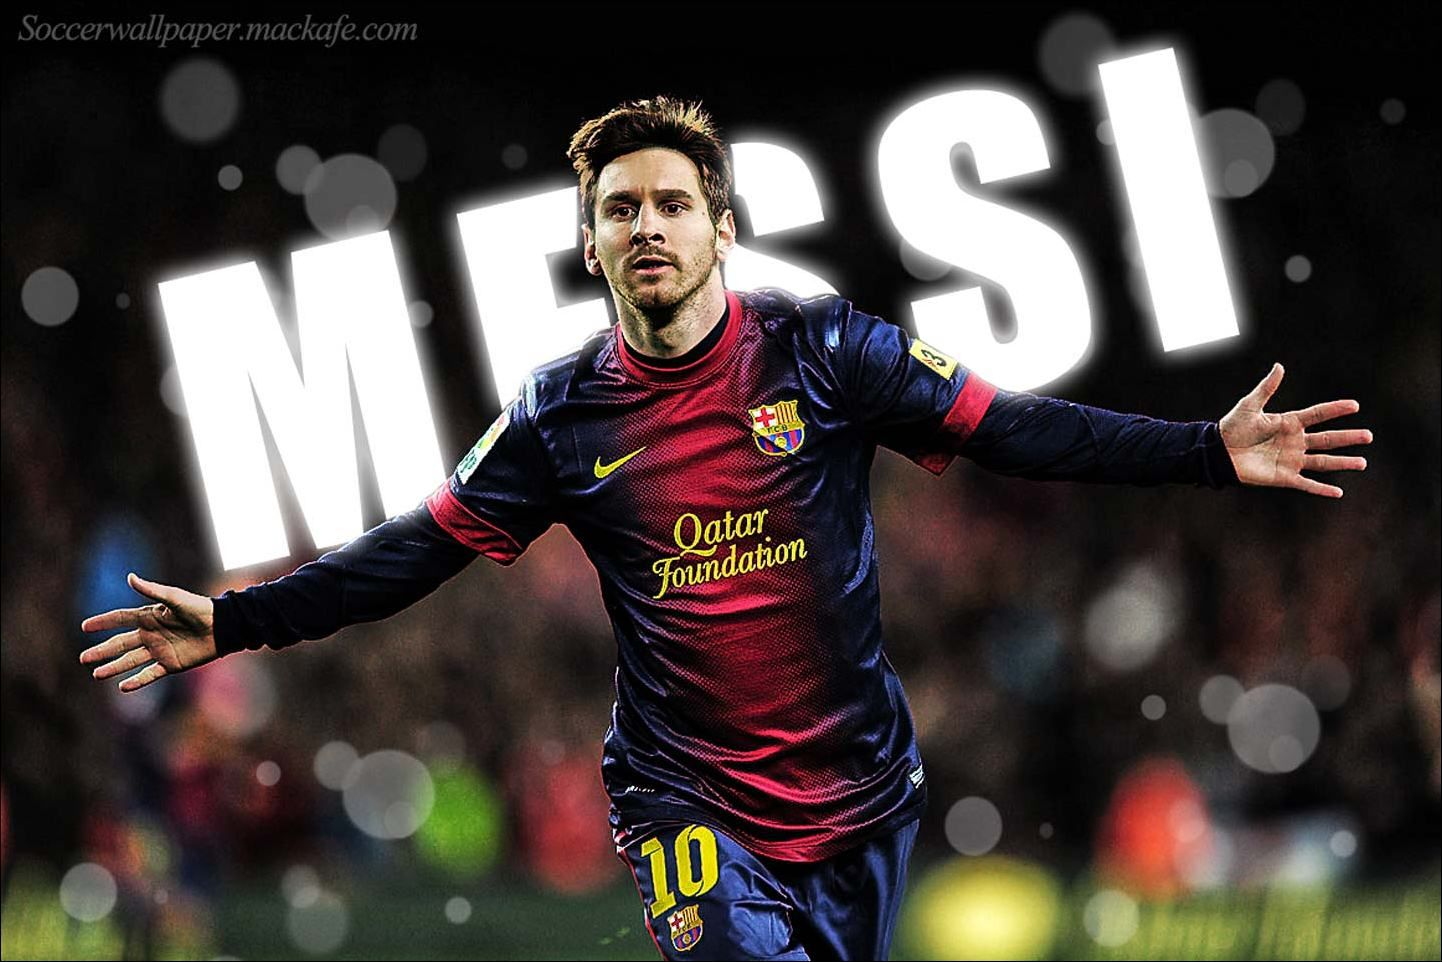 Lionel Messi Wallpaper Background Download HD